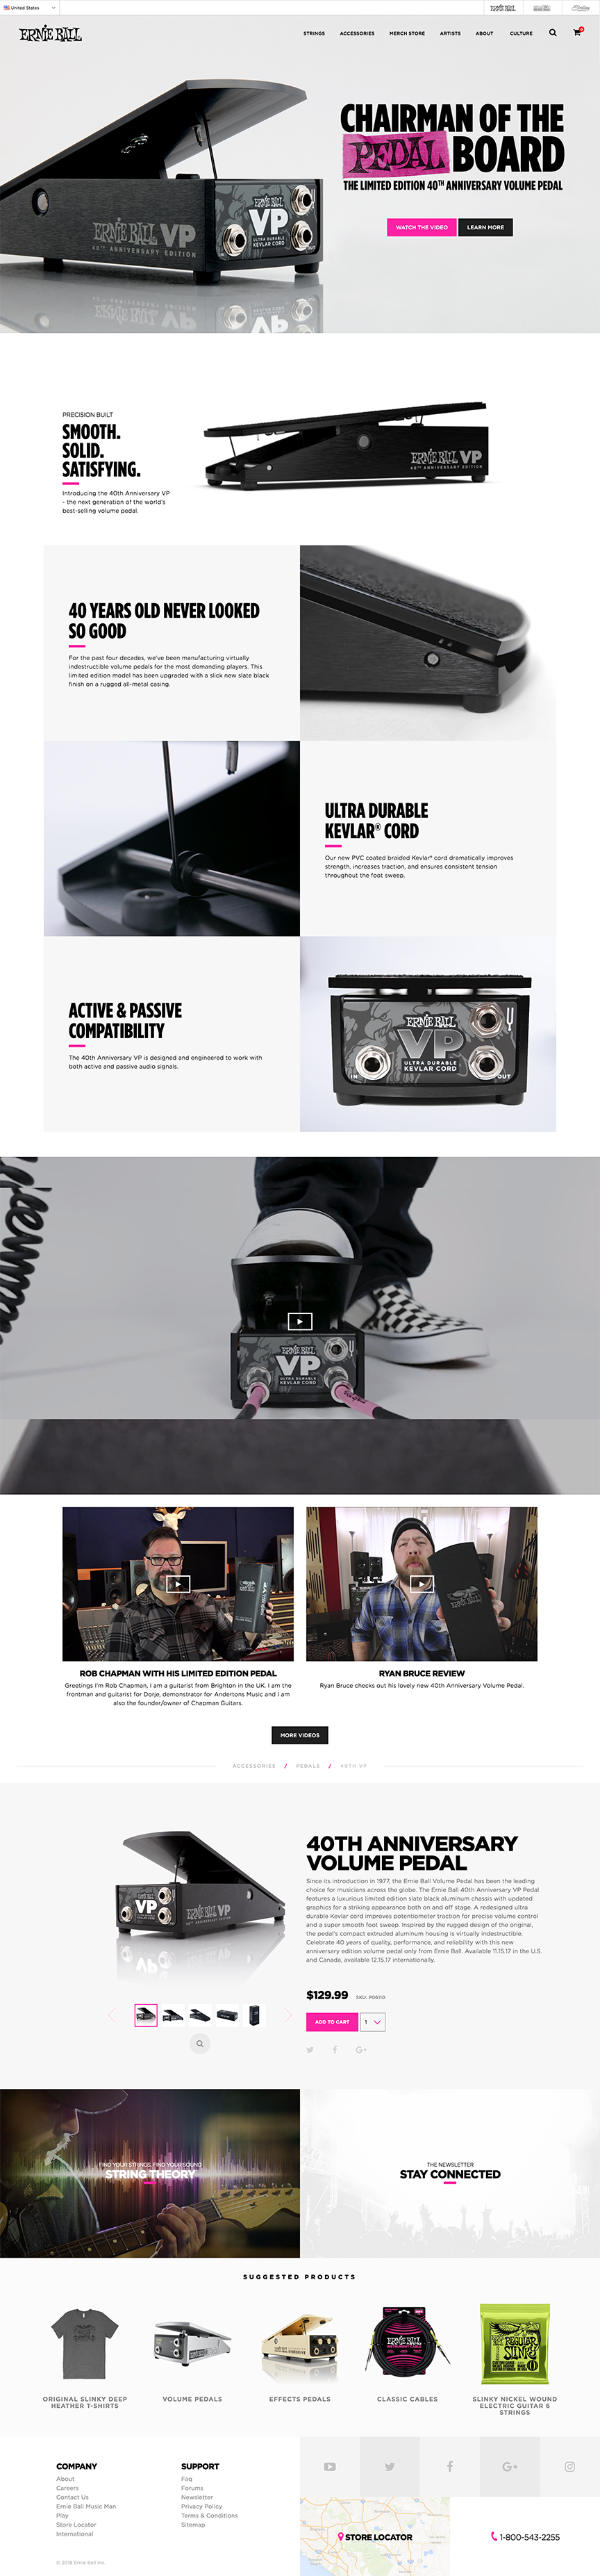 screencapture-ernieball-guitar-accessories-pedals-40th-anniversary-volume-pedal-2018-04-03-15_30_1.png